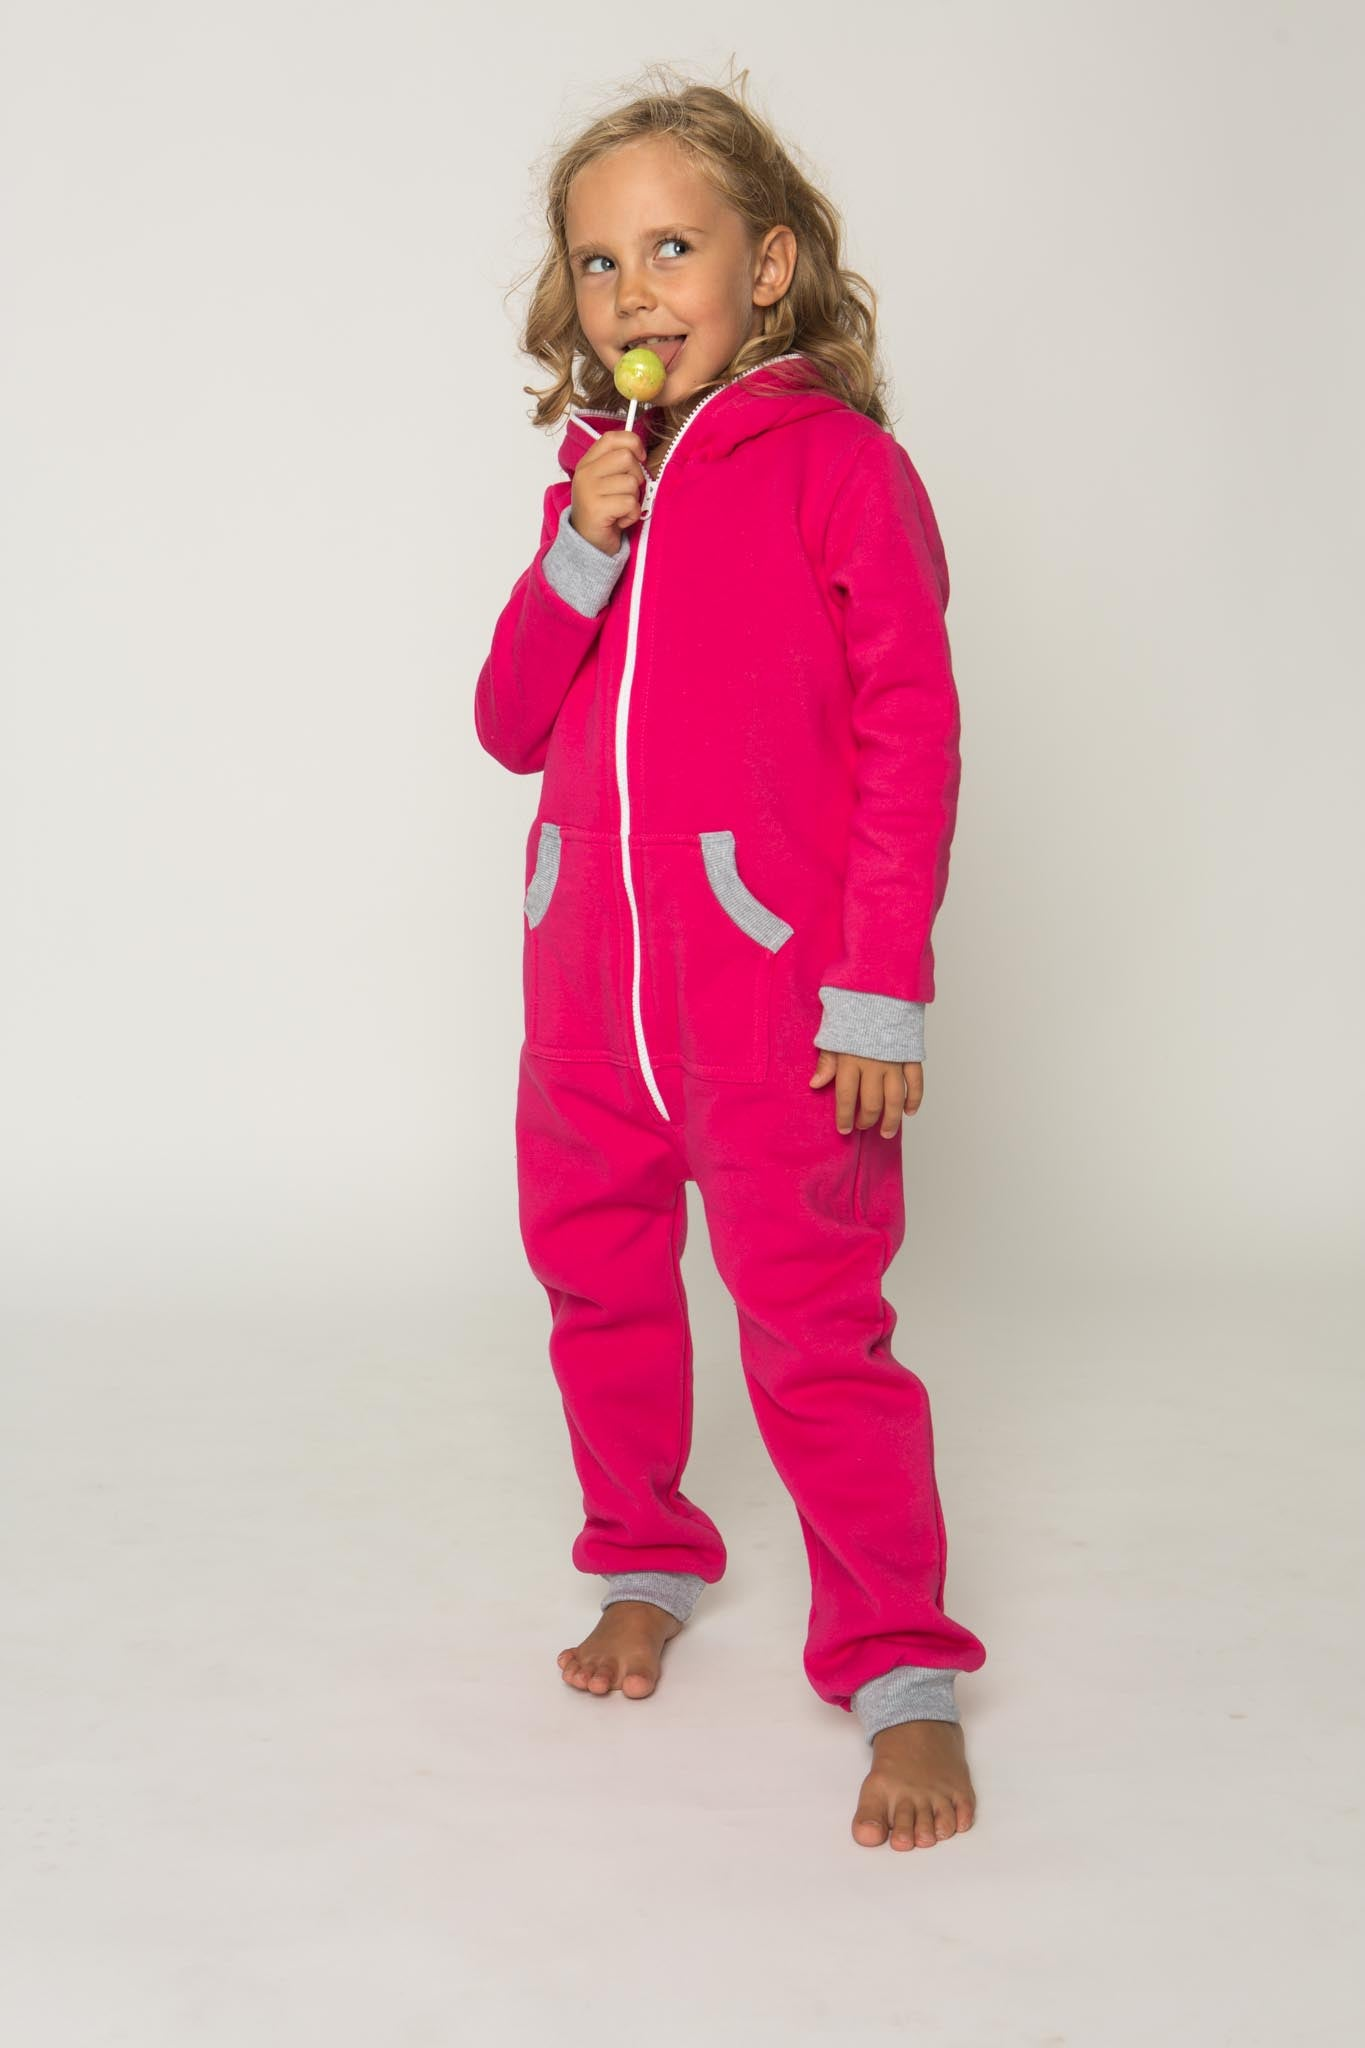 Sofa Killer pink unisex kids onesie